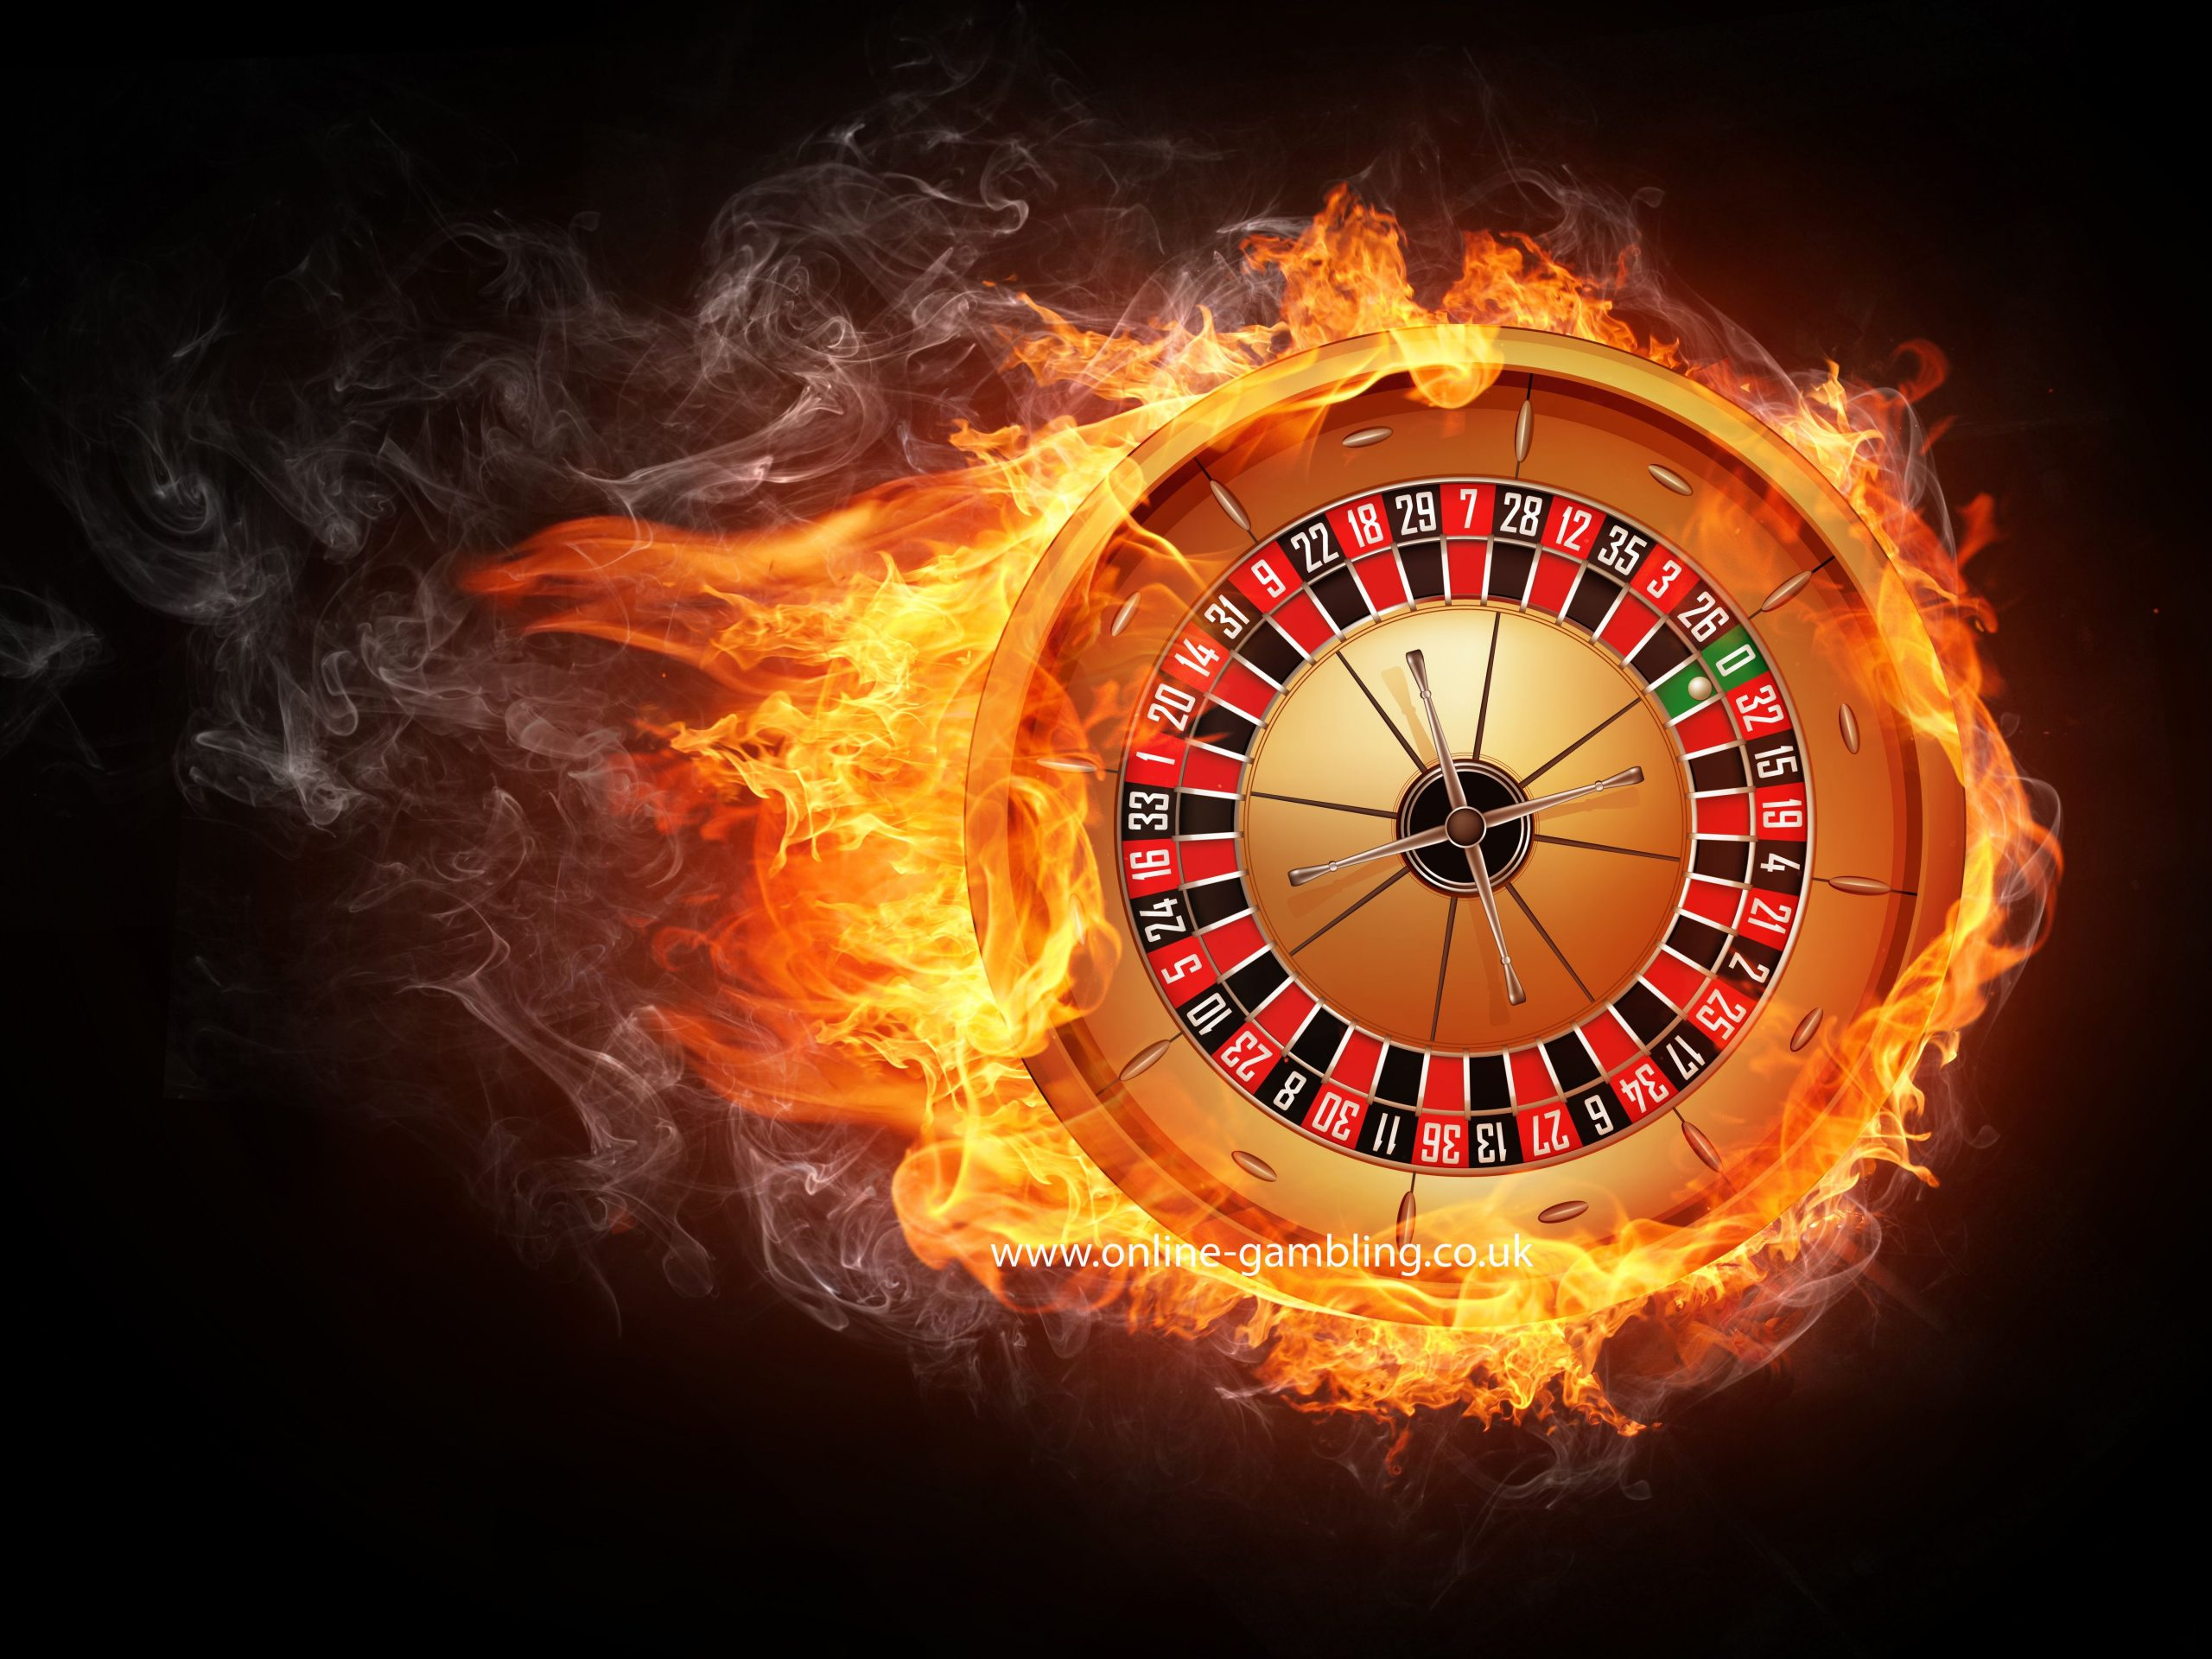 Locate The Best UK Online Casino With Great Casino Games And Bonuses